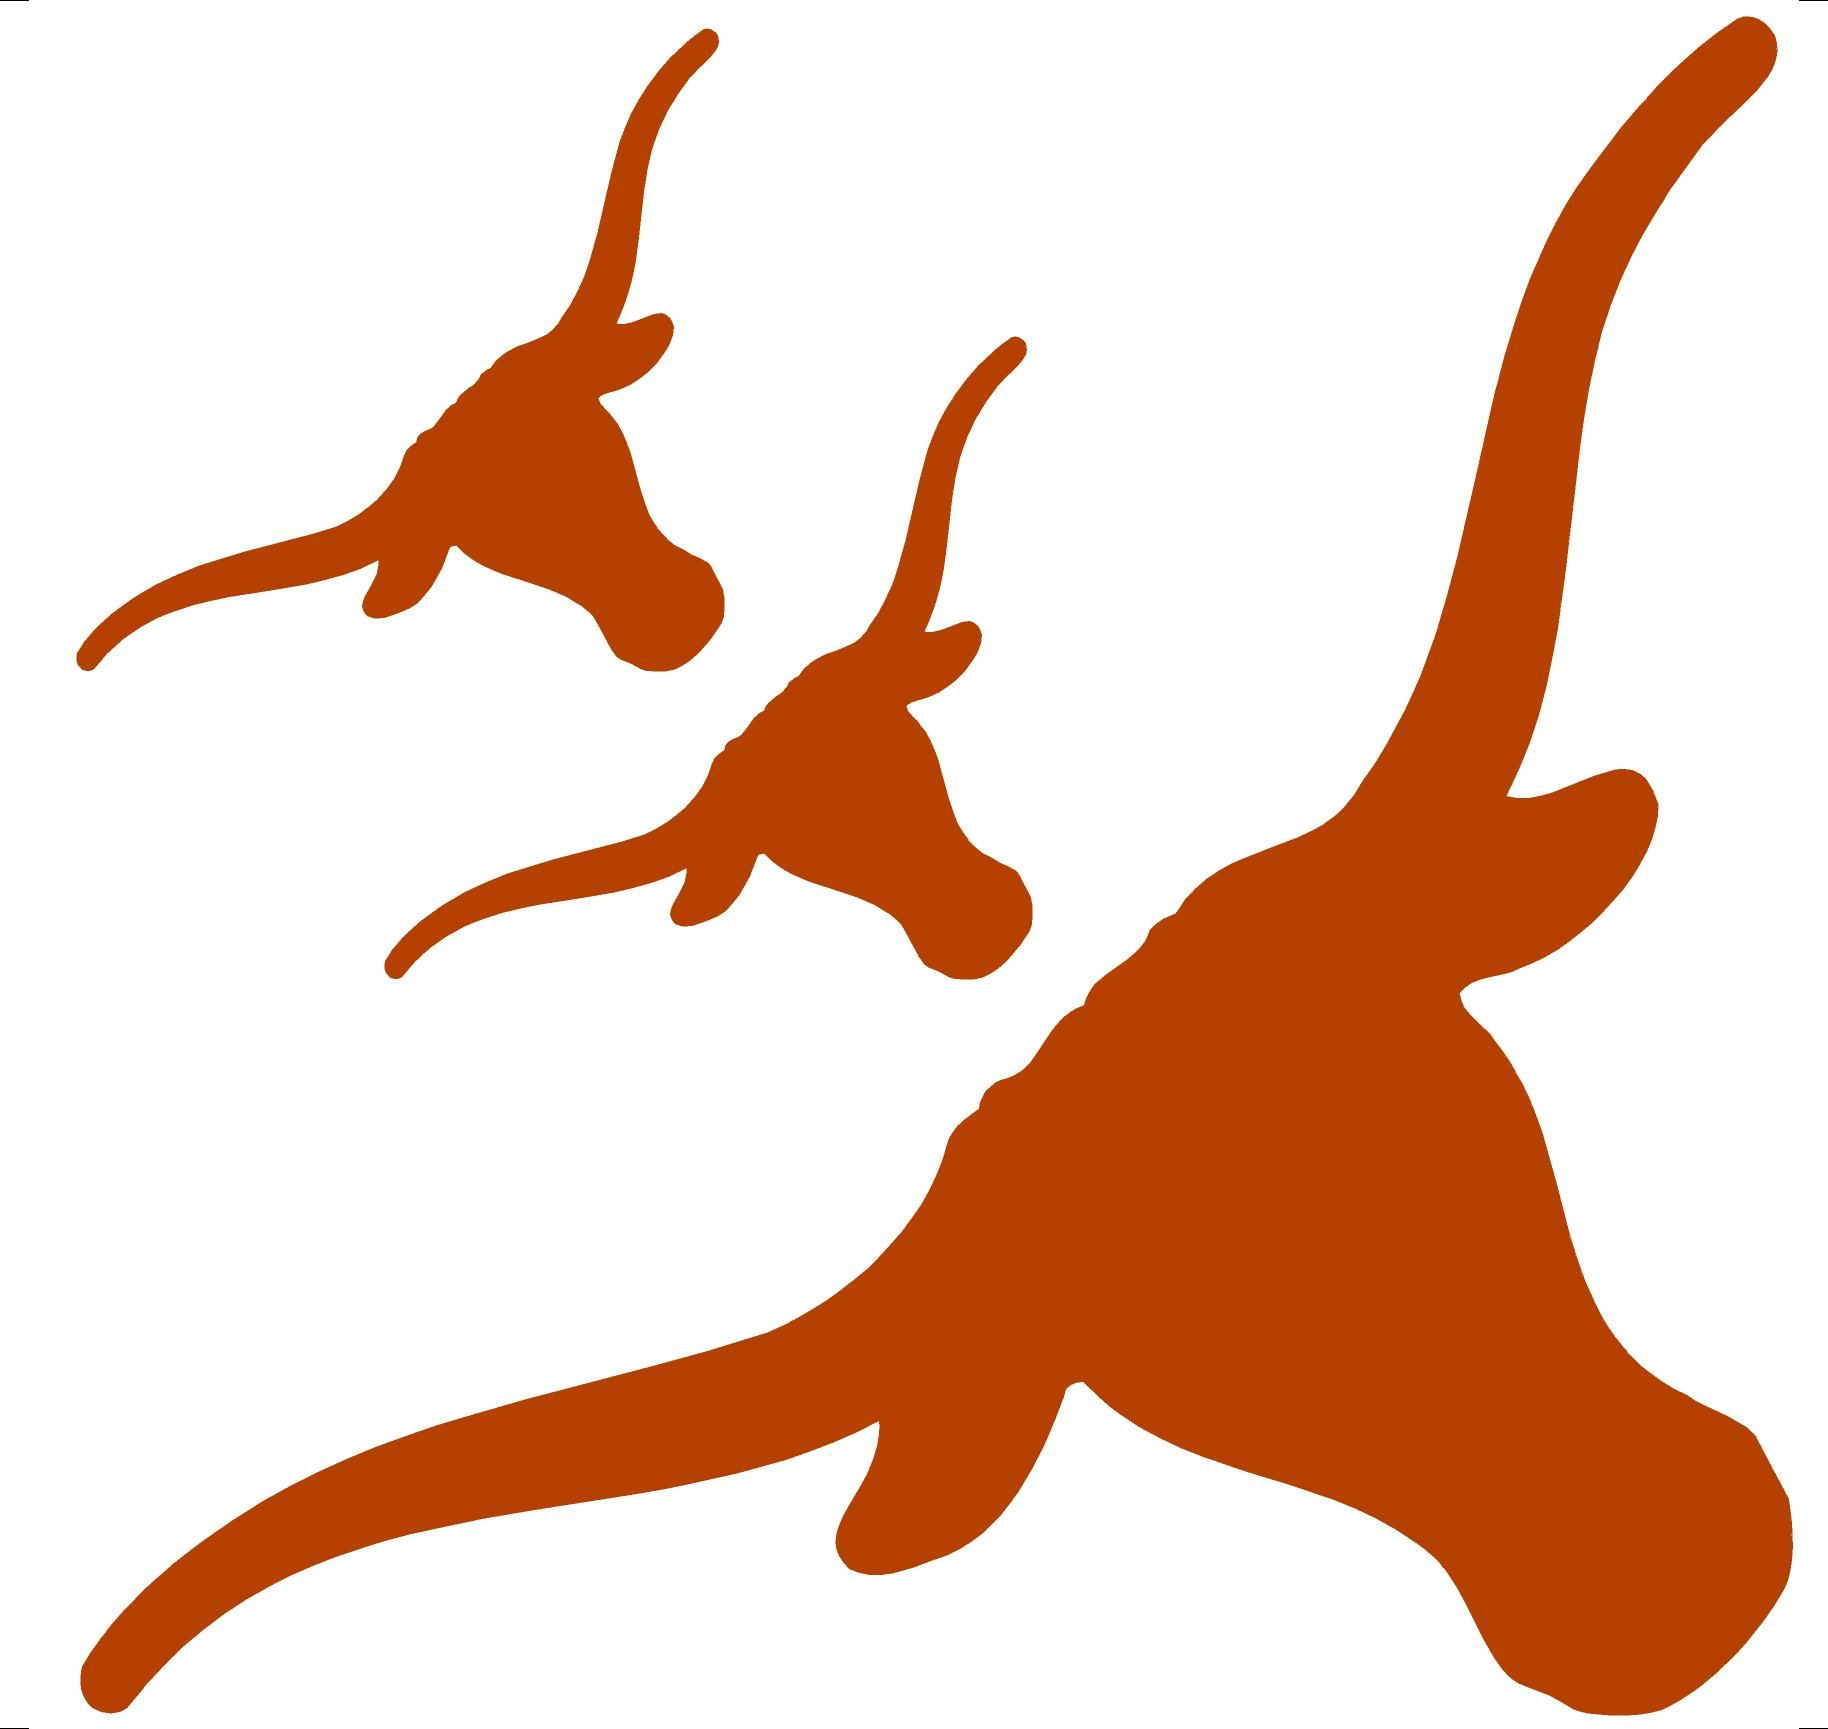 Pin on cricut . Longhorn clipart orange